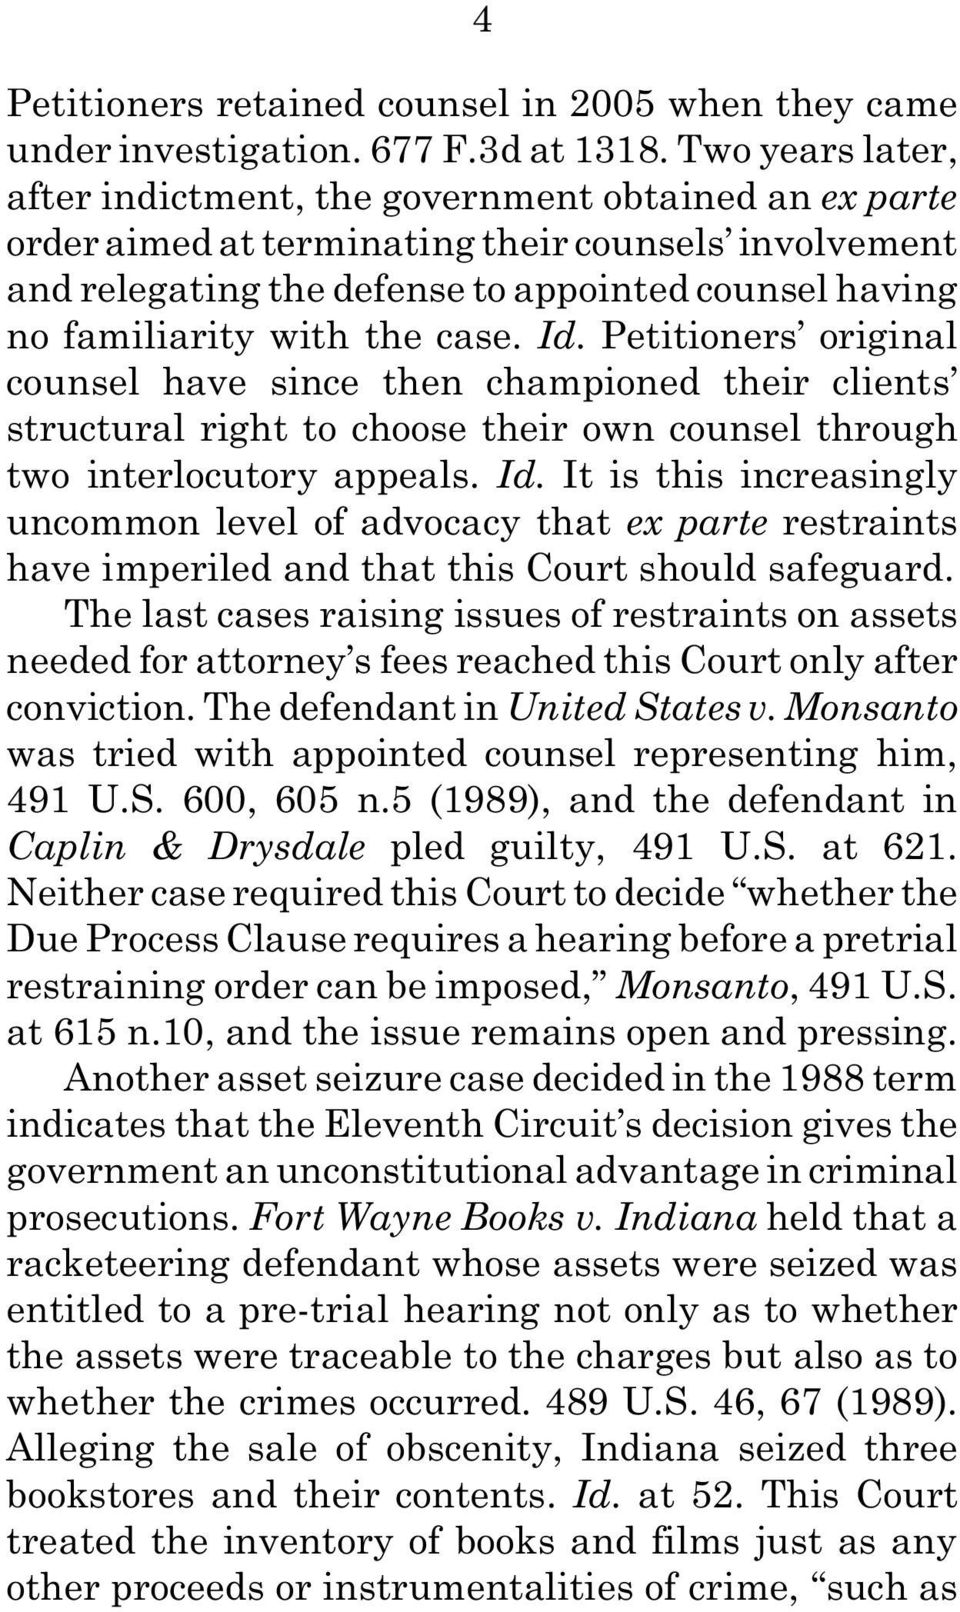 the case. Id. Petitioners original counsel have since then championed their clients structural right to choose their own counsel through two interlocutory appeals. Id. It is this increasingly uncommon level of advocacy that ex parte restraints have imperiled and that this Court should safeguard.